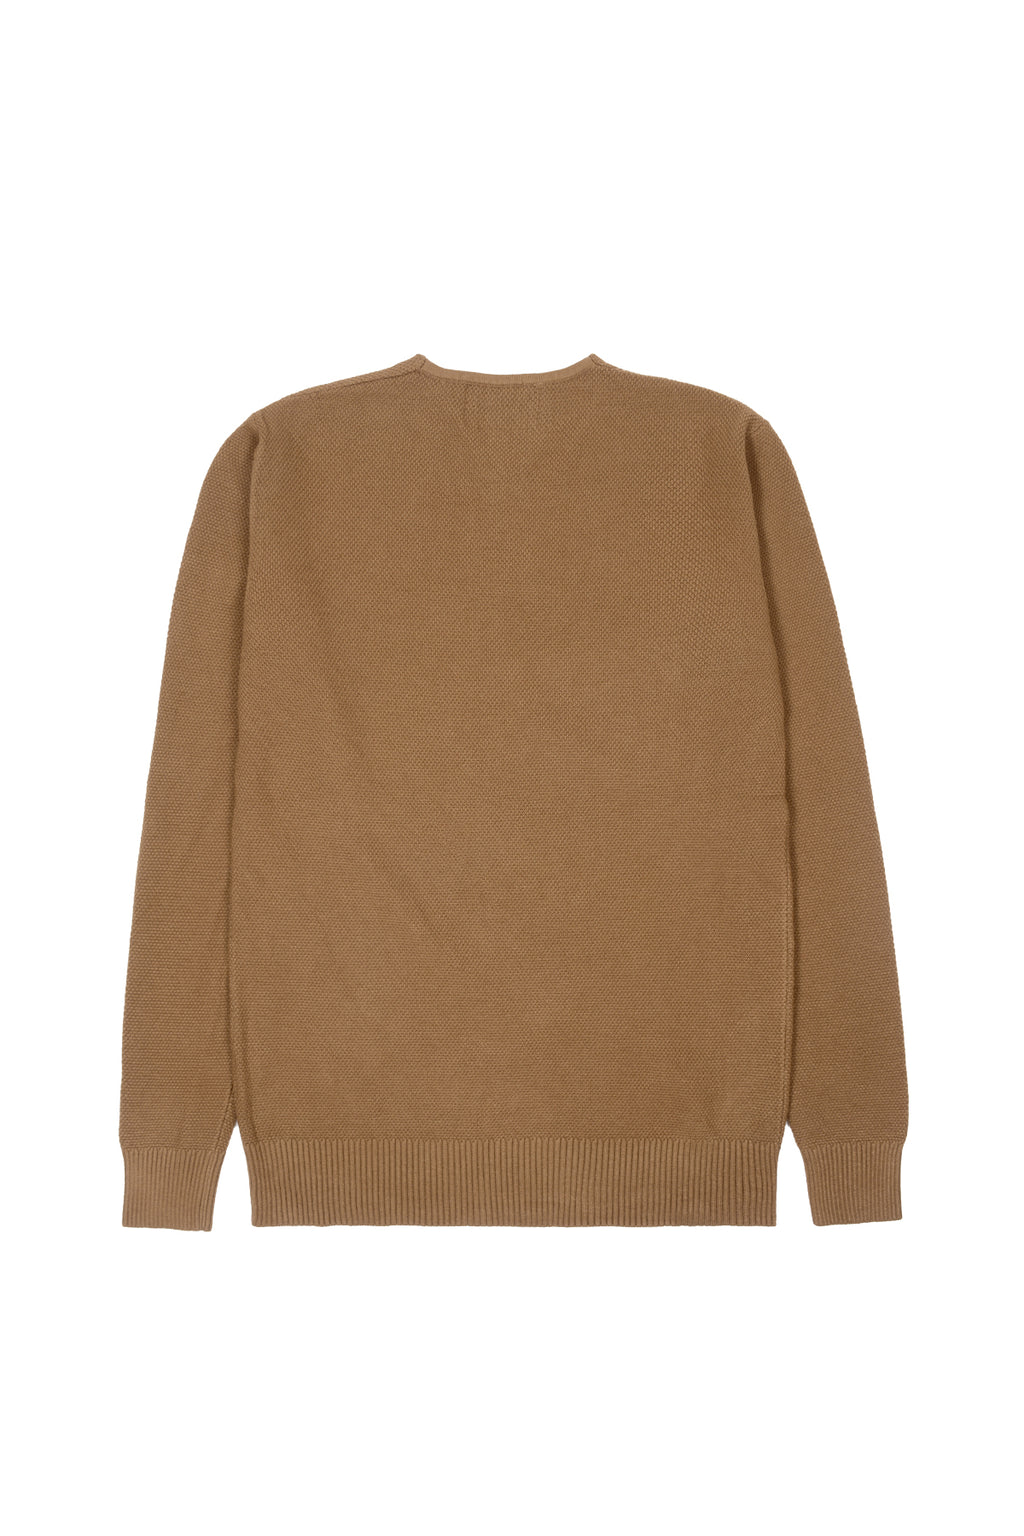 THREE-BUTTON WAFFLE KNIT SWEATER | CAMEL - 185